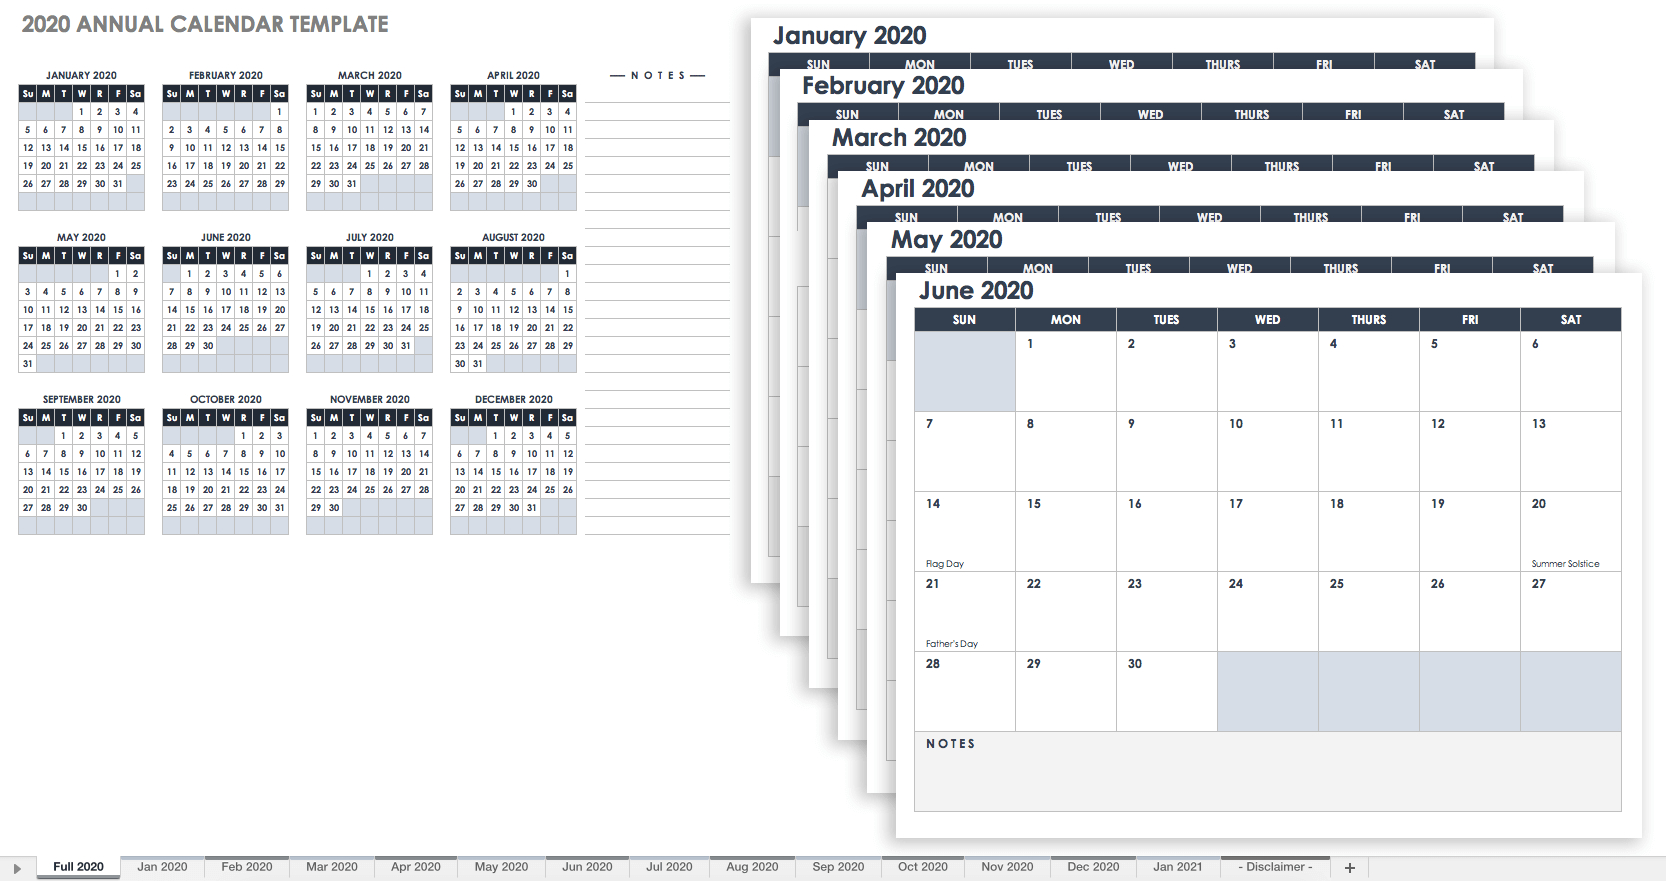 Free, Printable Excel Calendar Templates For 2019 & On | Smartsheet intended for Excel Template For Calendar